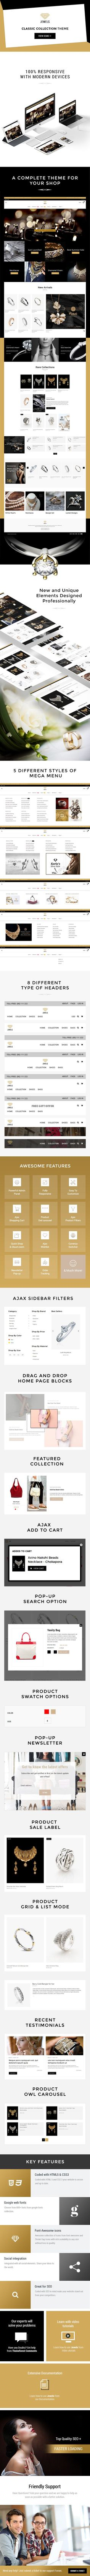 Jewels - Responsive Shopify Theme #mens jewel #necklace #shopify theme � Download ? https://themeforest.net/item/jewels-responsive-shopify-theme/20323802?ref=rabosch